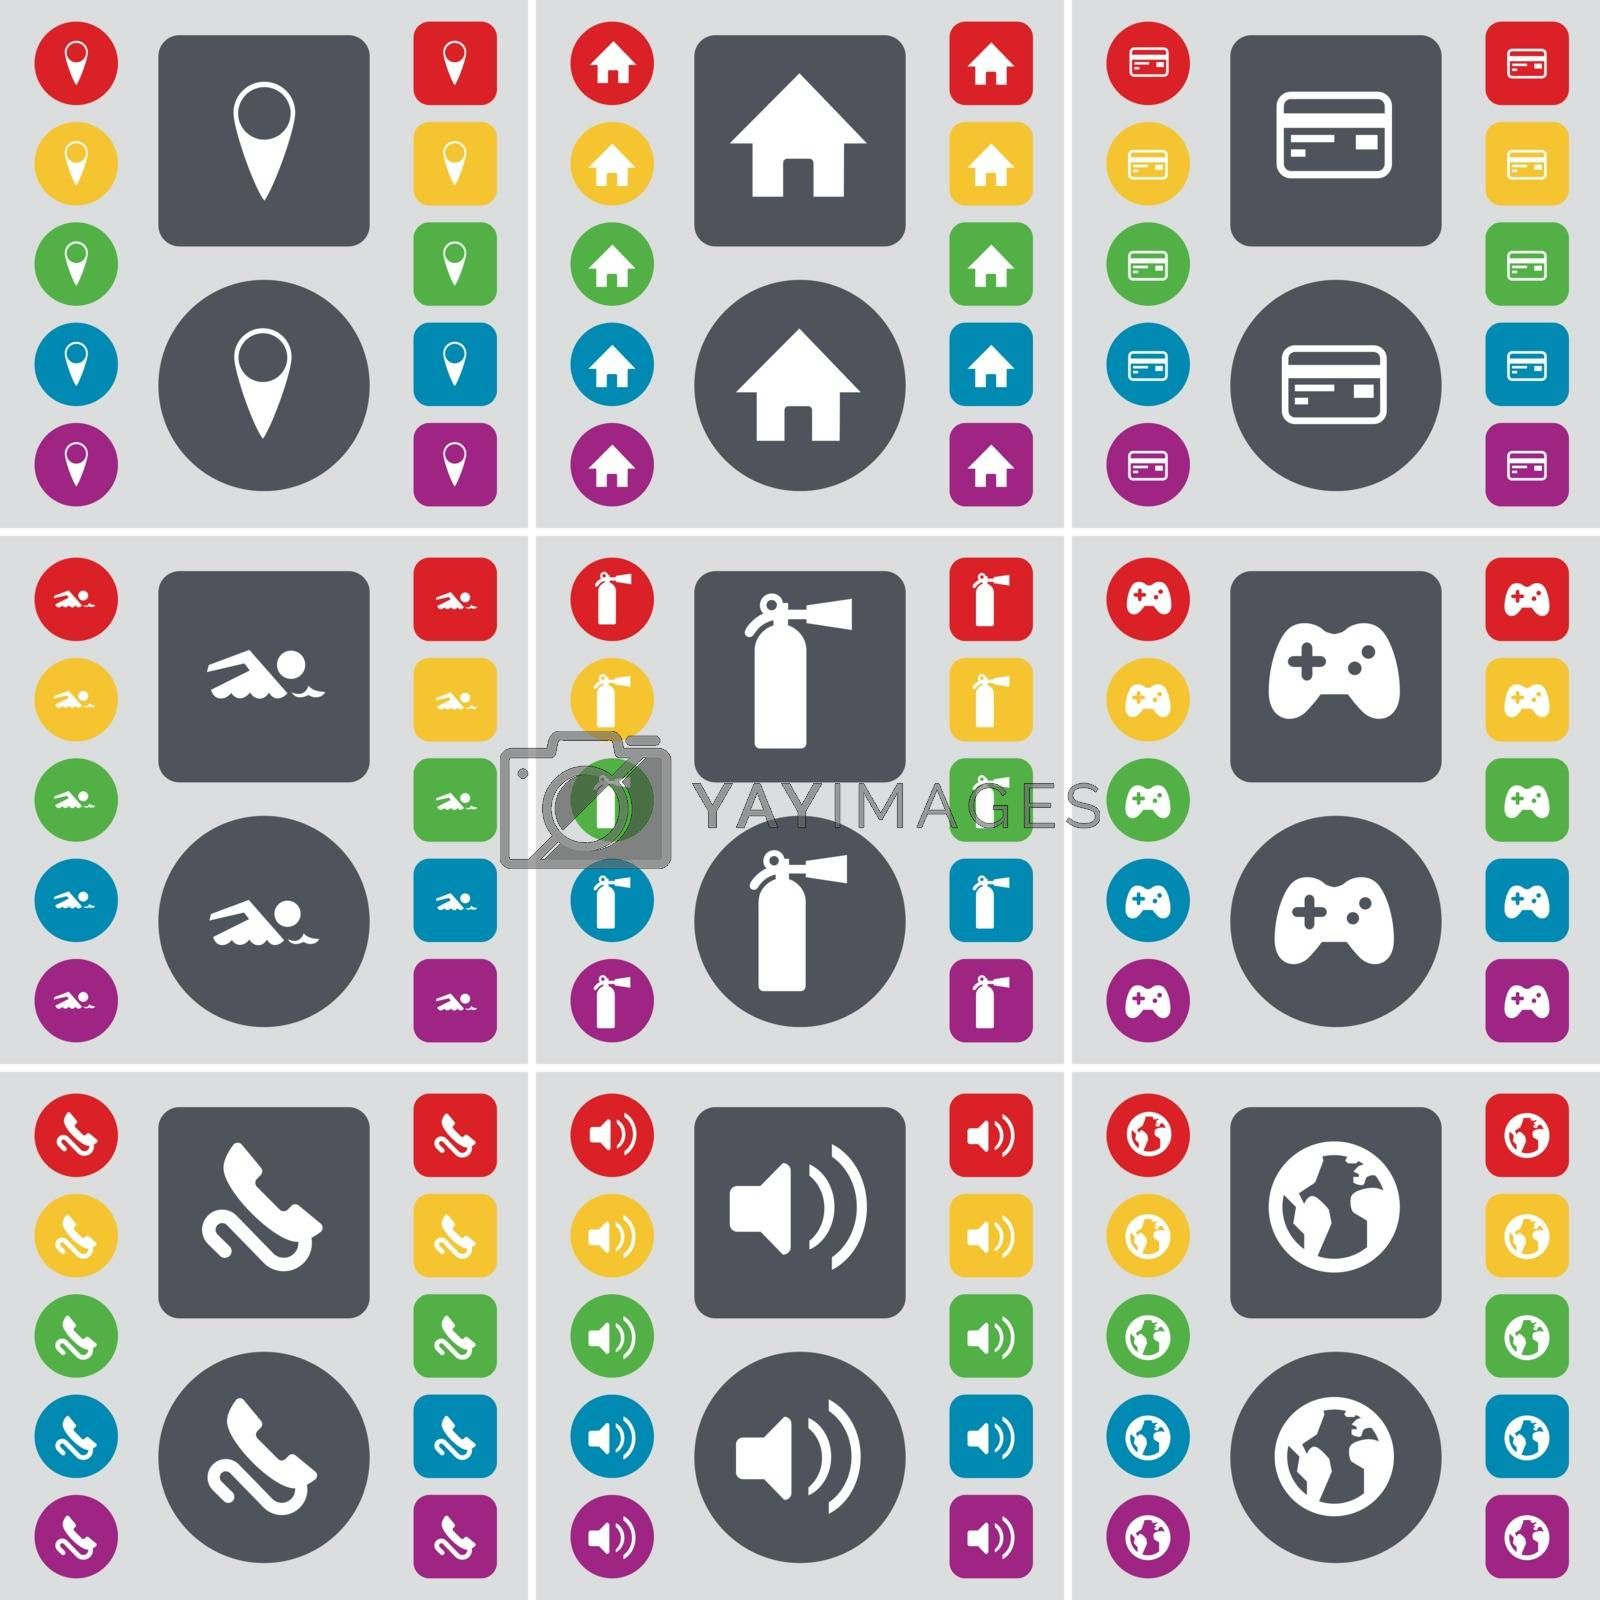 Royalty free image of Checkpoint, House, Credit card, Swimmer, File extinguisher, Gamepad, Receiver, Sound, Planet icon symbol. A large set of flat, colored buttons for your design. Vector by serhii_lohvyniuk